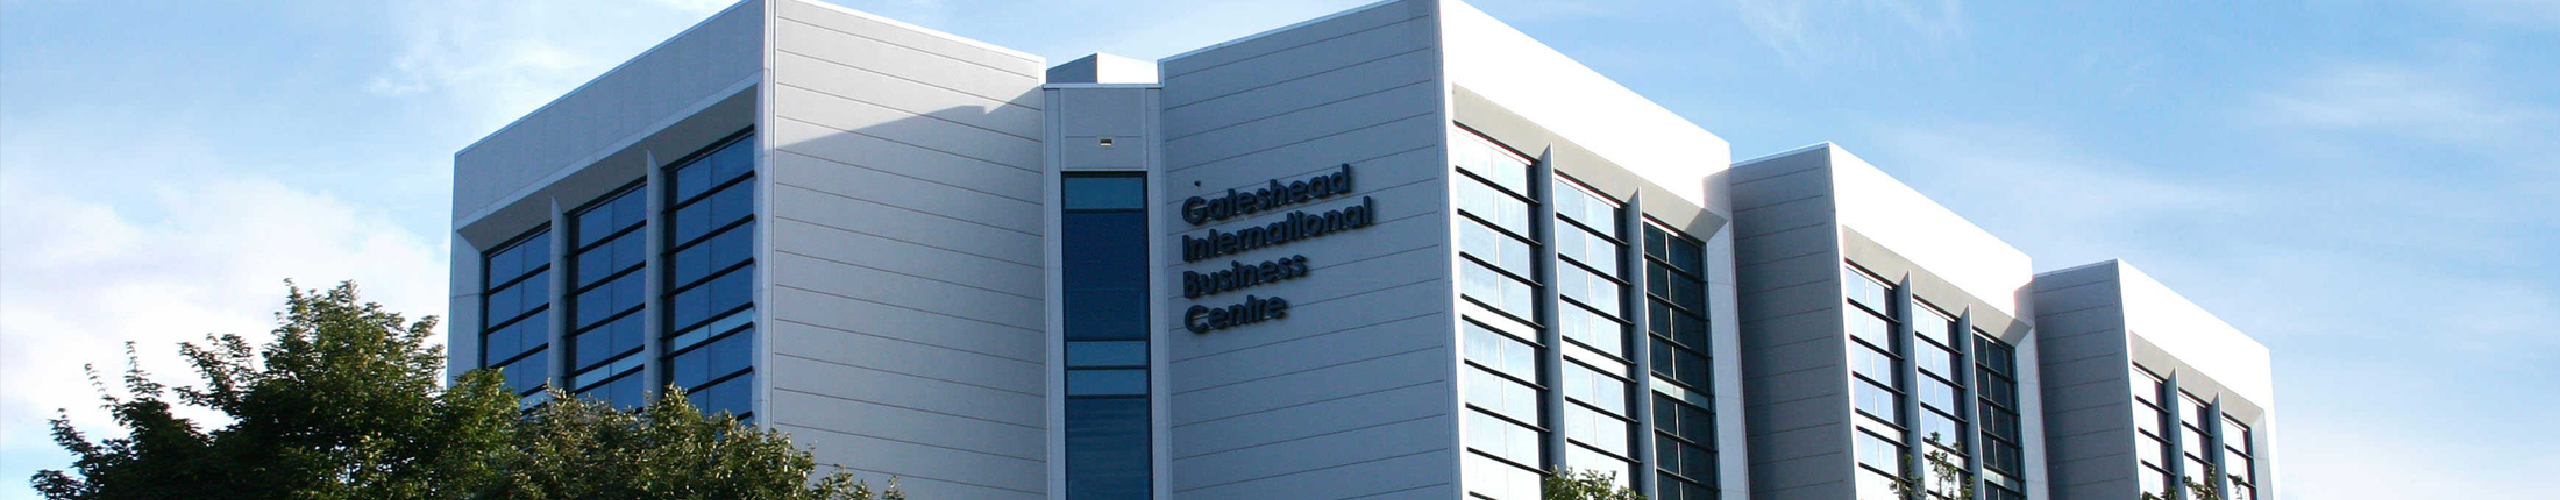 Gateshead International Business Centre